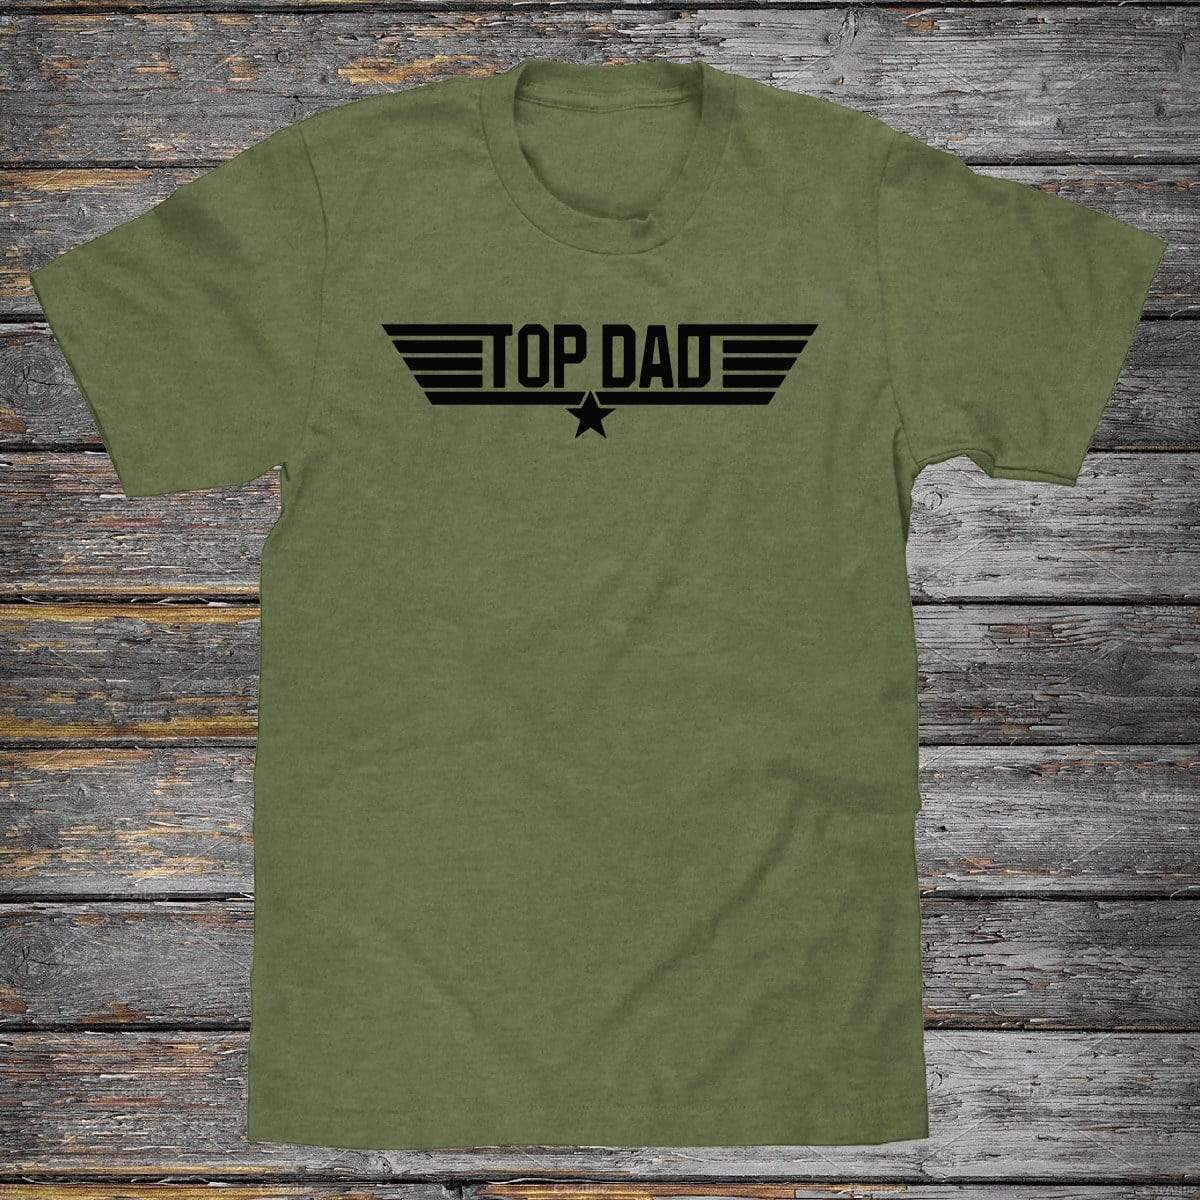 Top Dad Premium Unisex T-Shirt